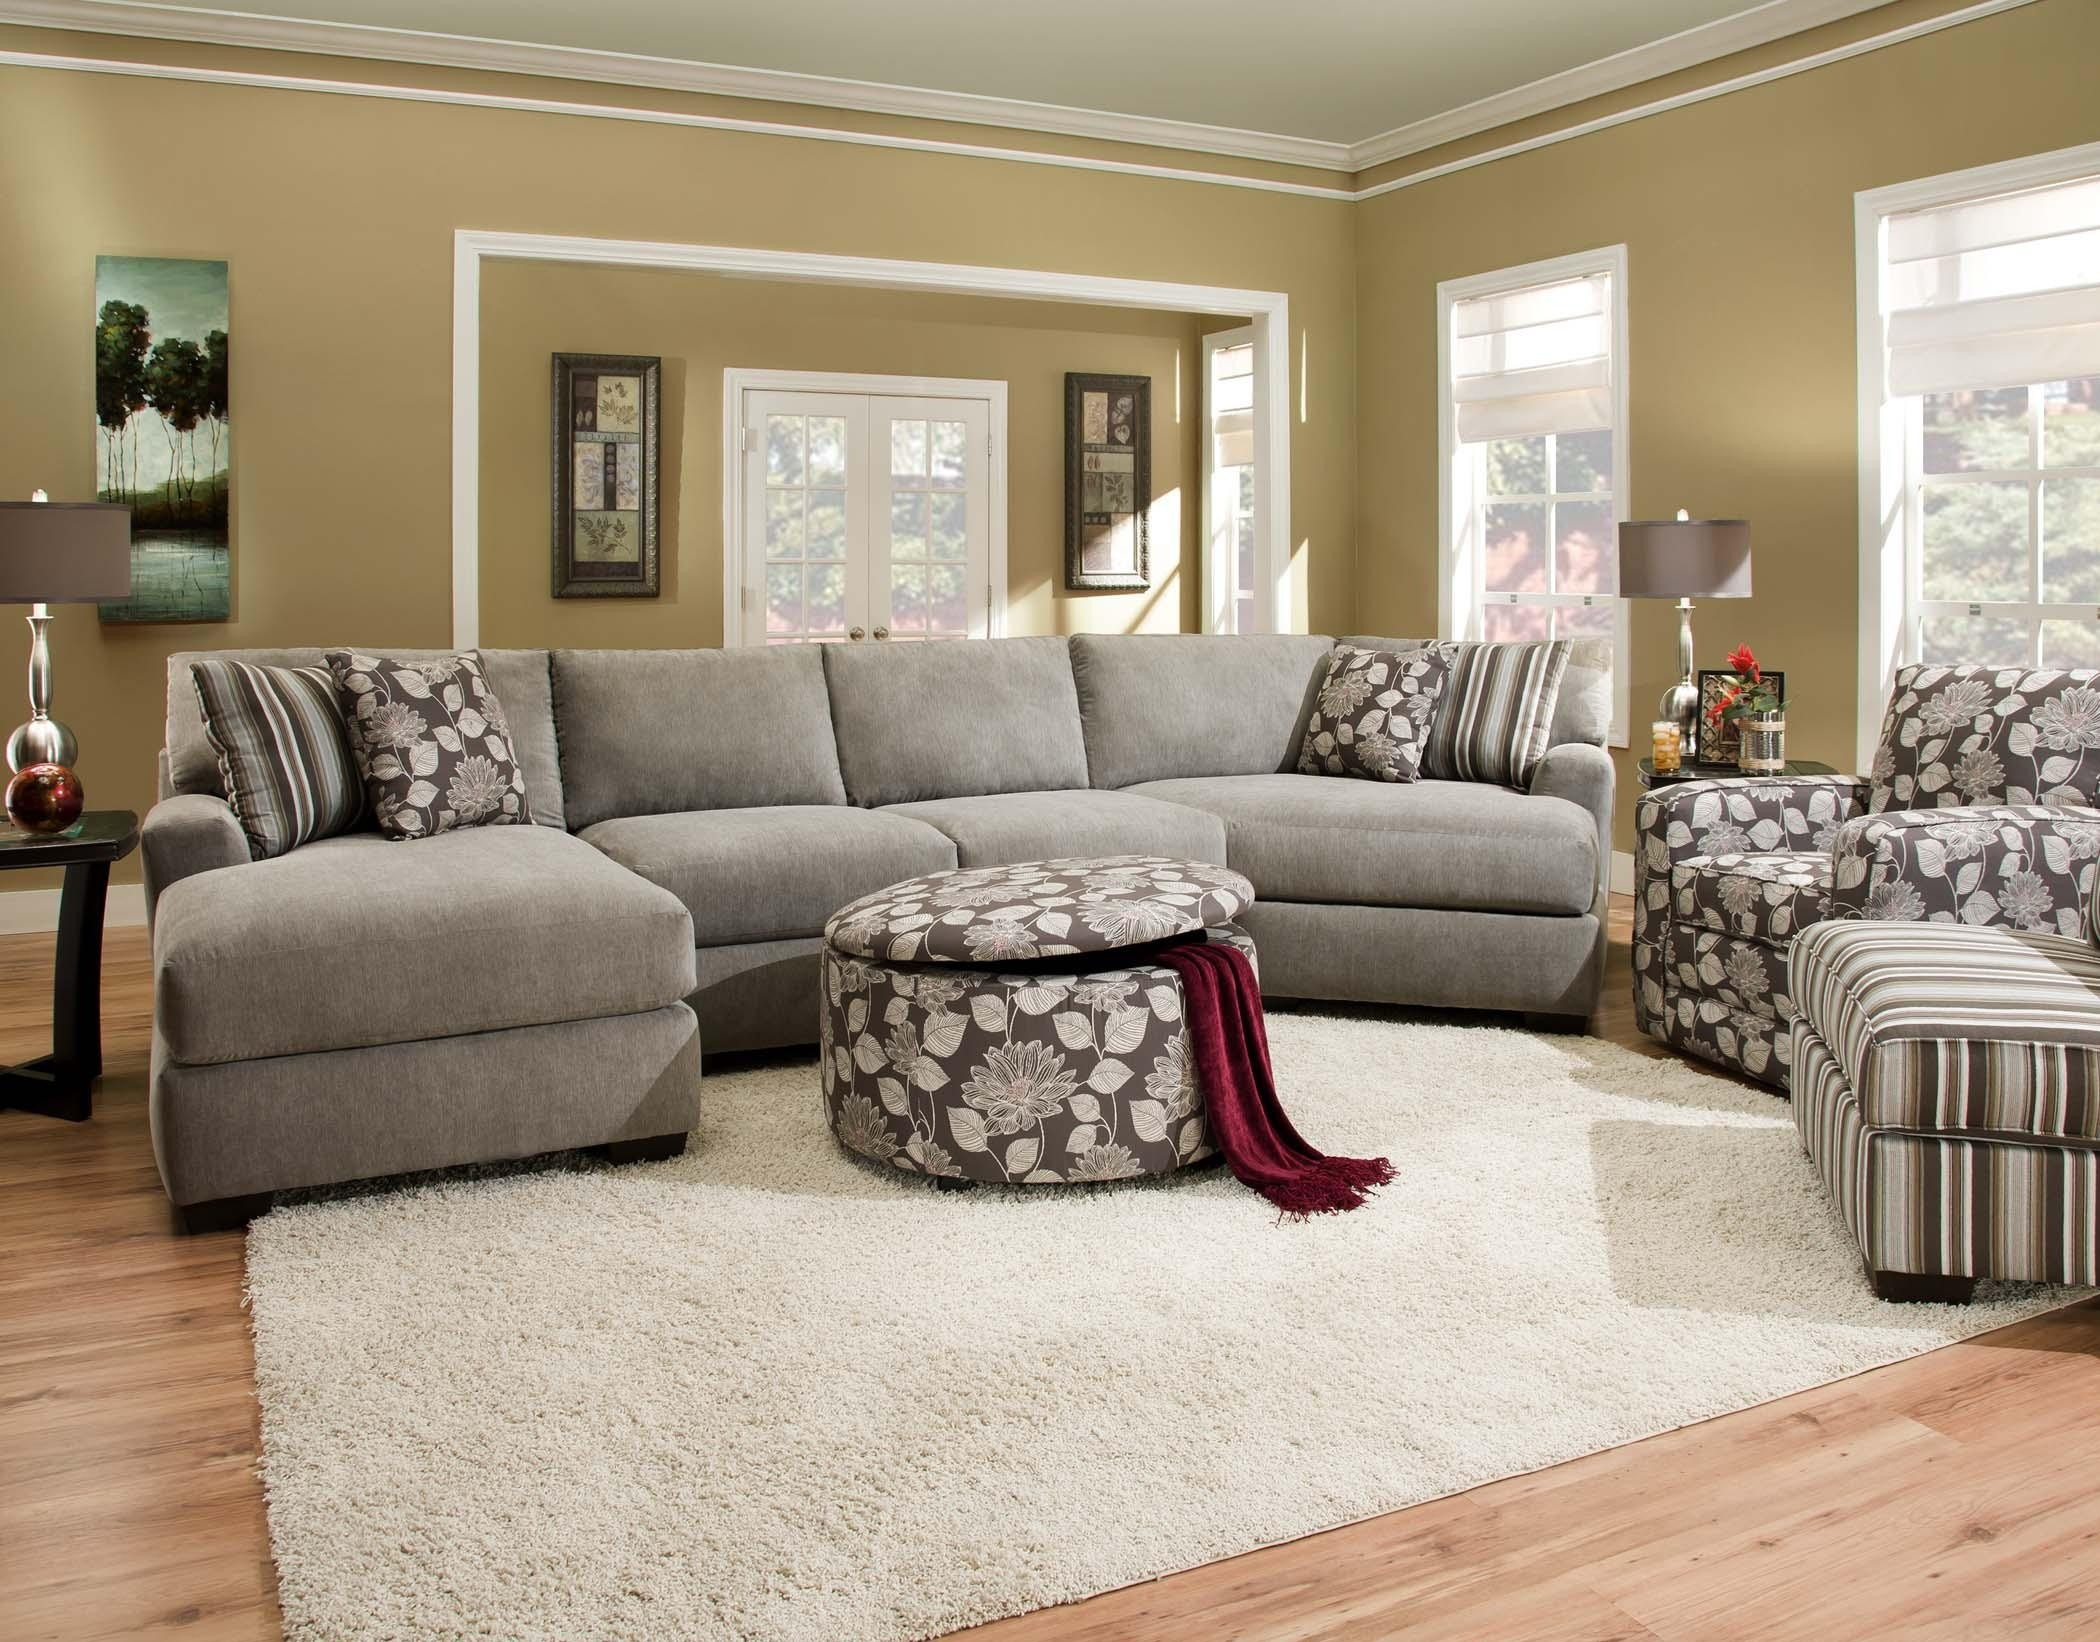 Corinthian 29A0 Sectional Sofa With 4 Seats | Standard Furniture with Josephine 2 Piece Sectionals With Laf Sofa (Image 7 of 30)